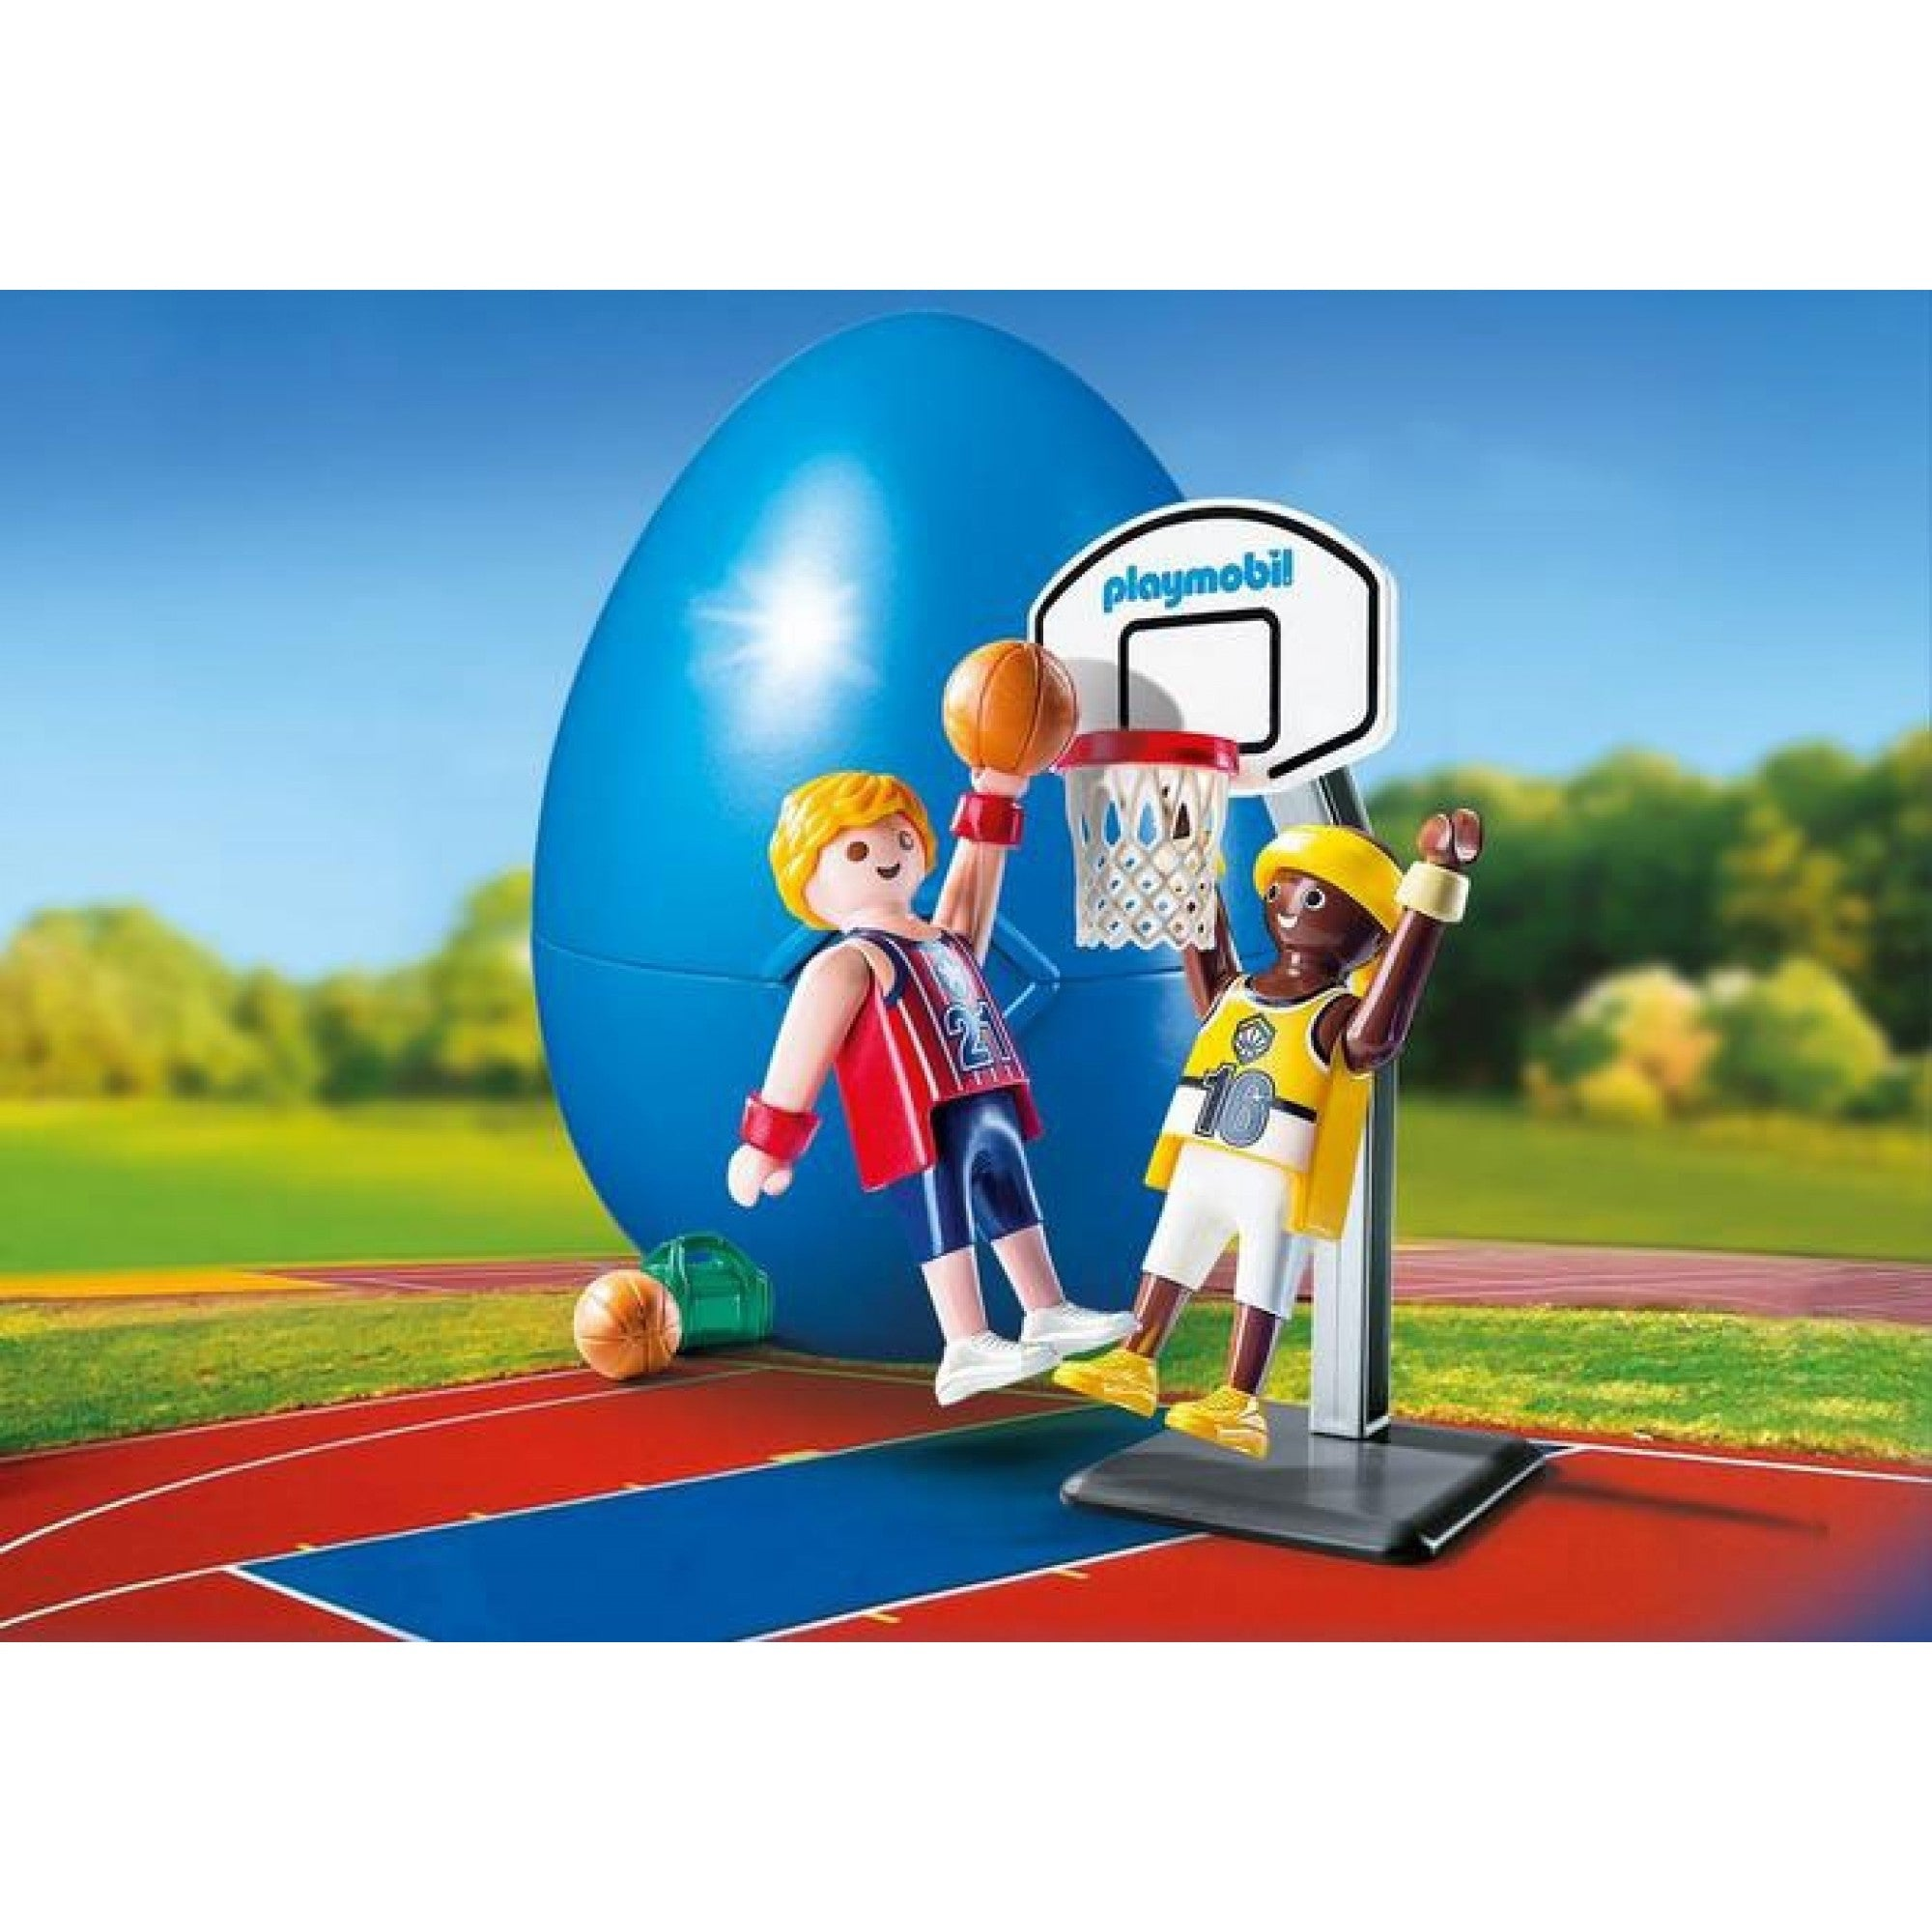 One-on-One Basketball - Playmobil